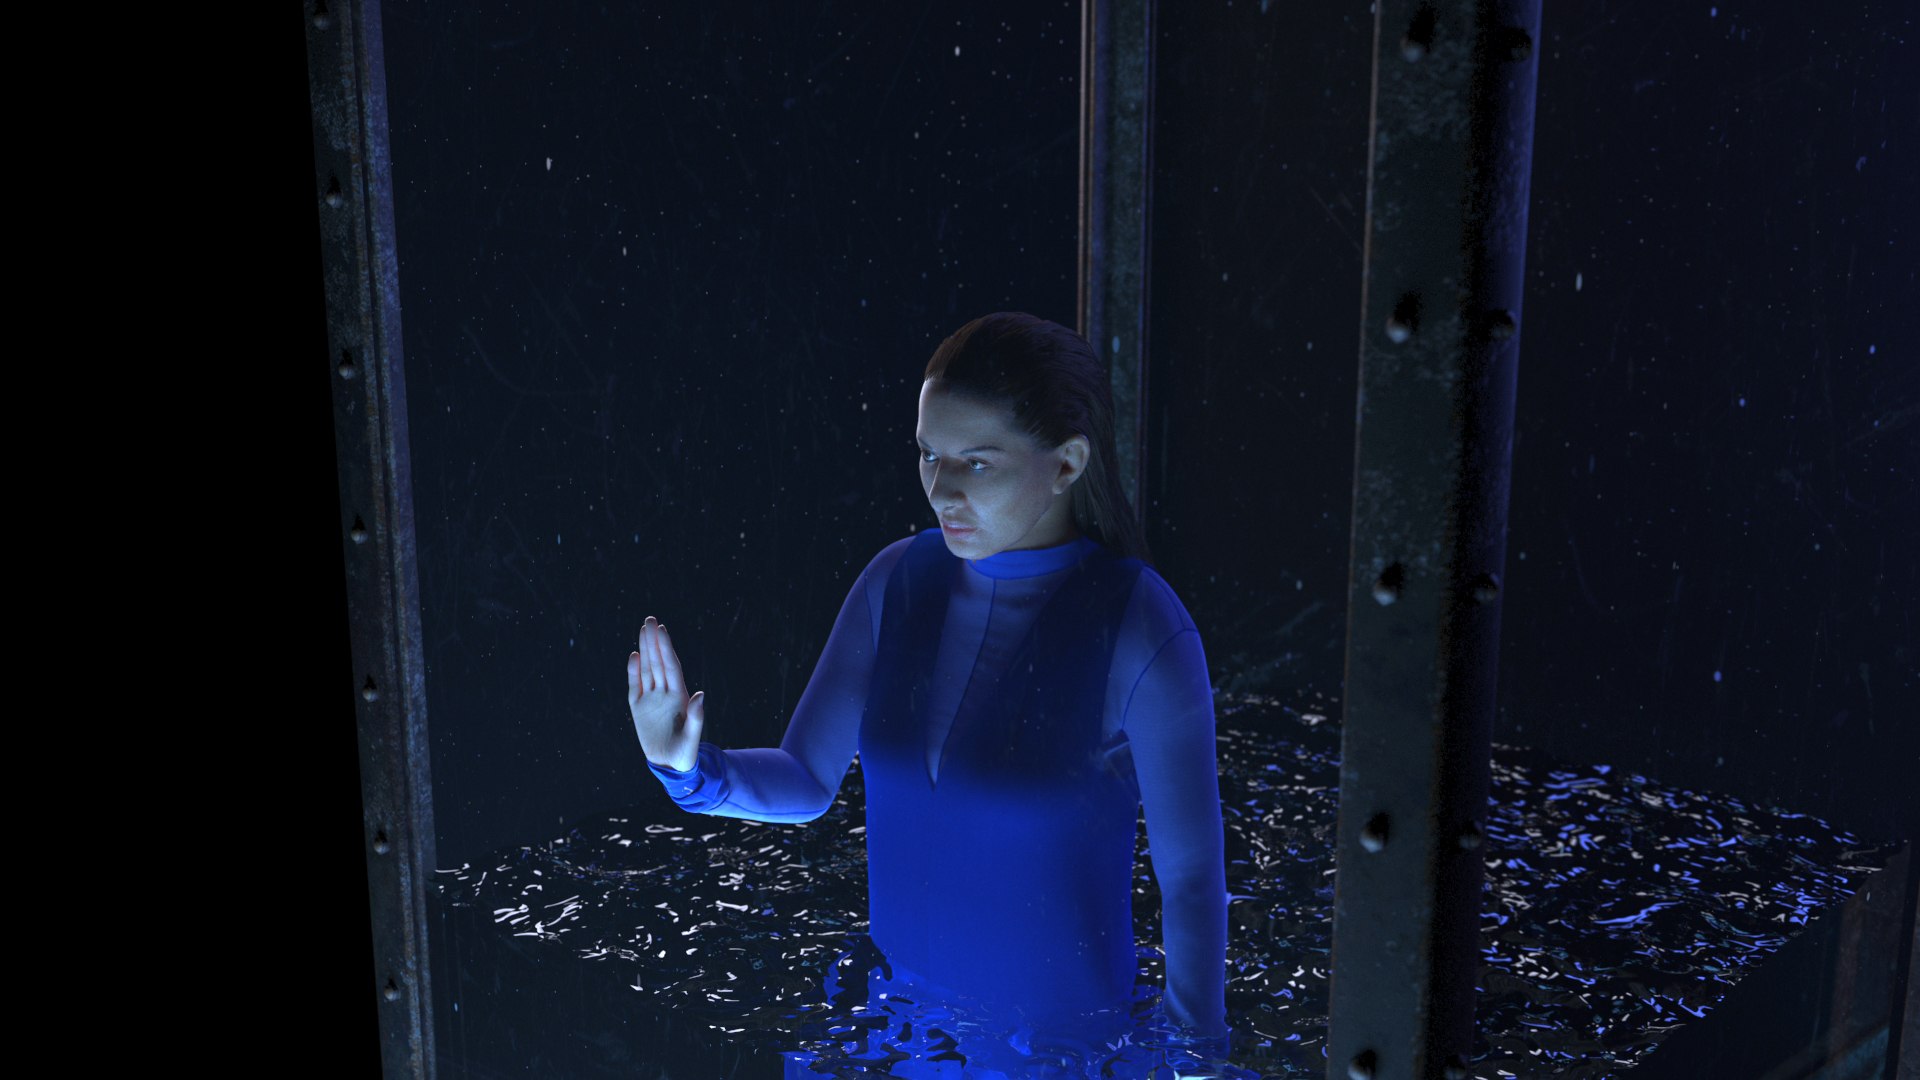 Marina Abramovic's first virtual reality artwork to be presented at the 58th Venice Biennale image